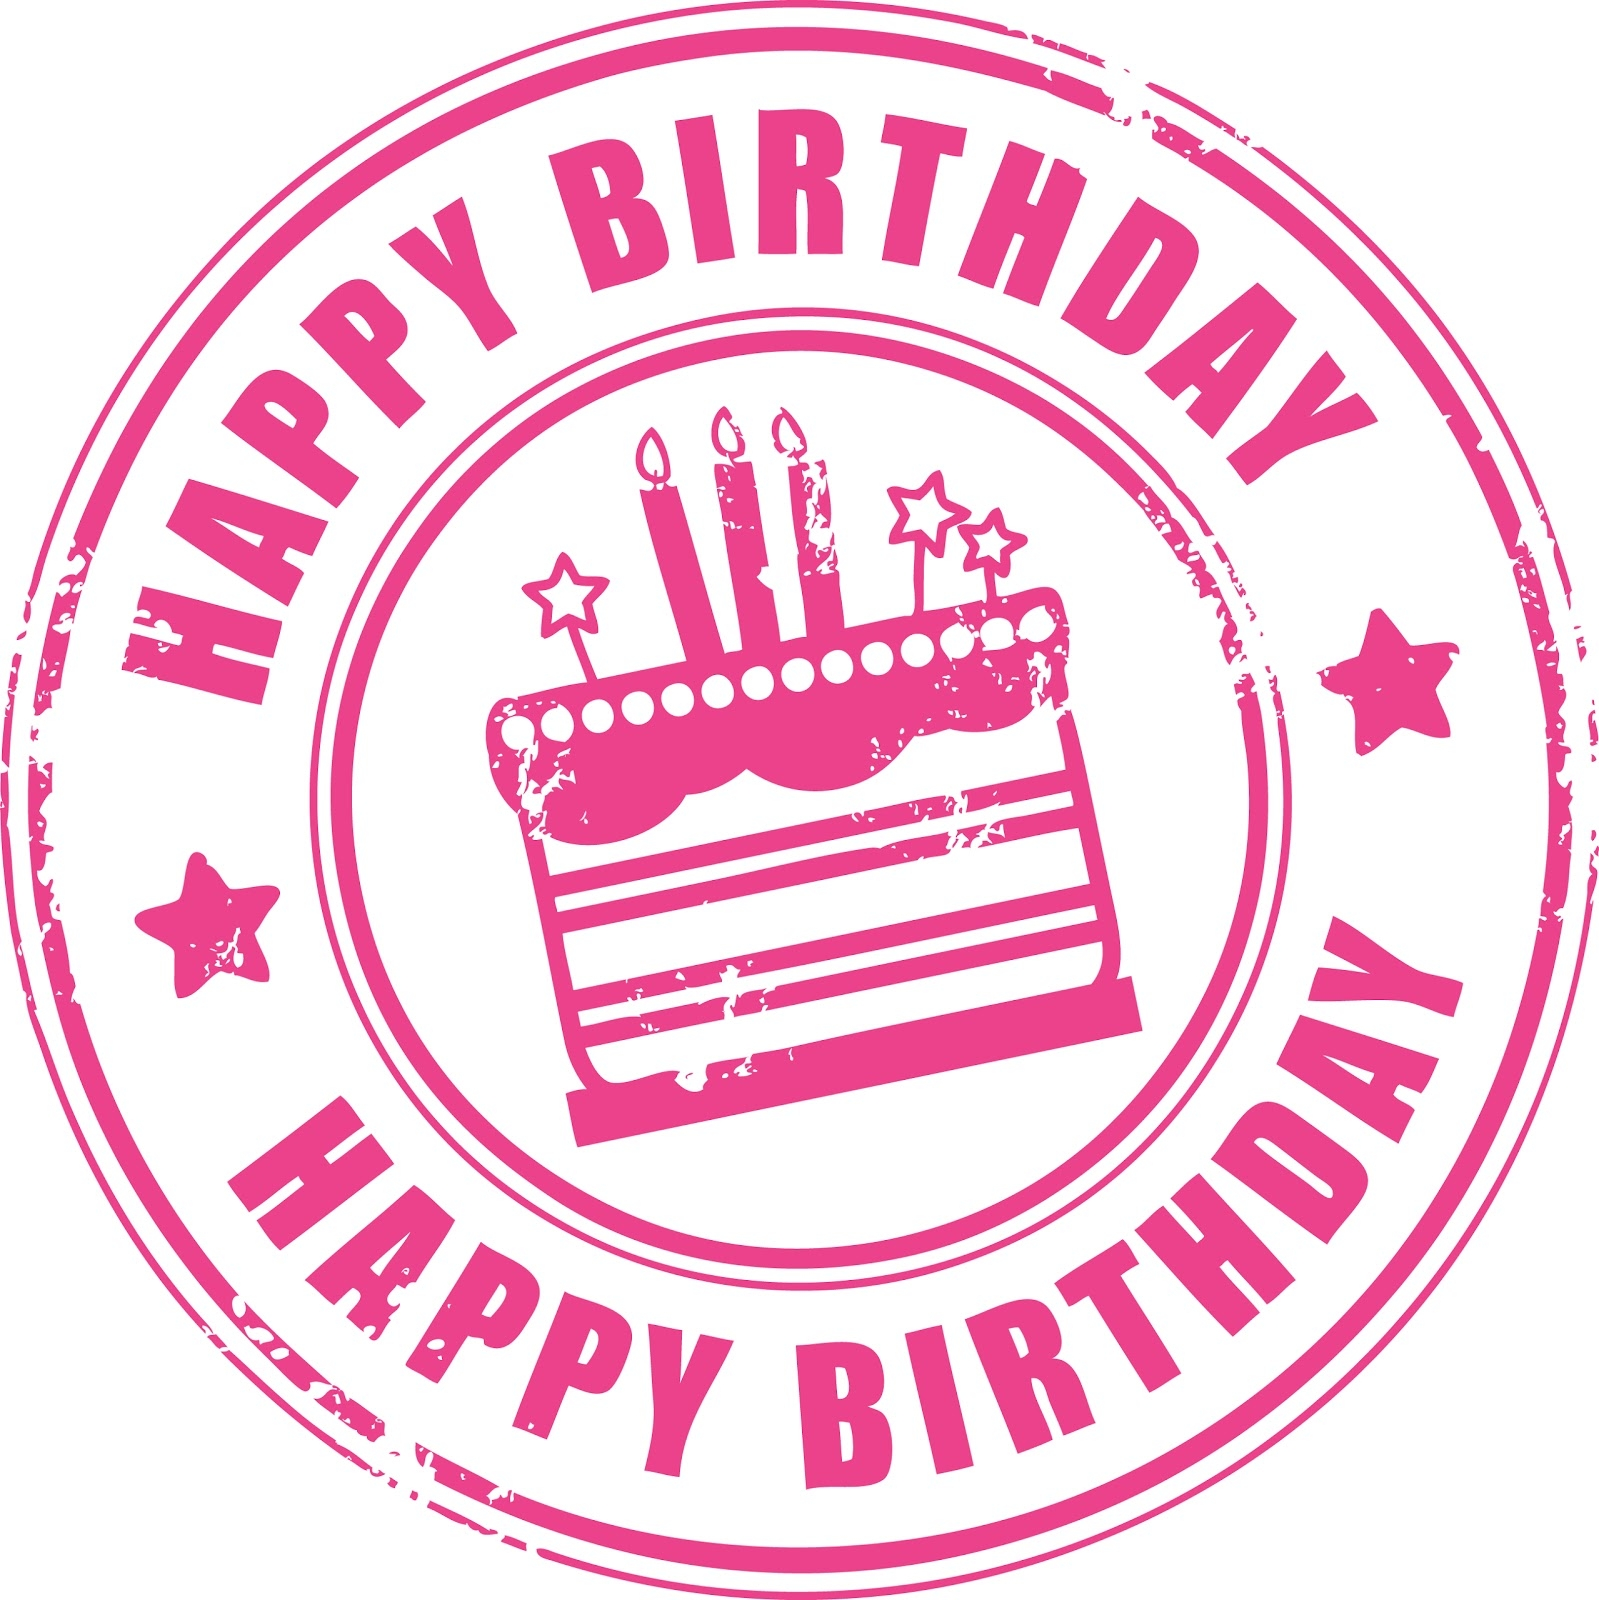 Free Rockstar Birthday Cliparts, Download Free Clip Art.